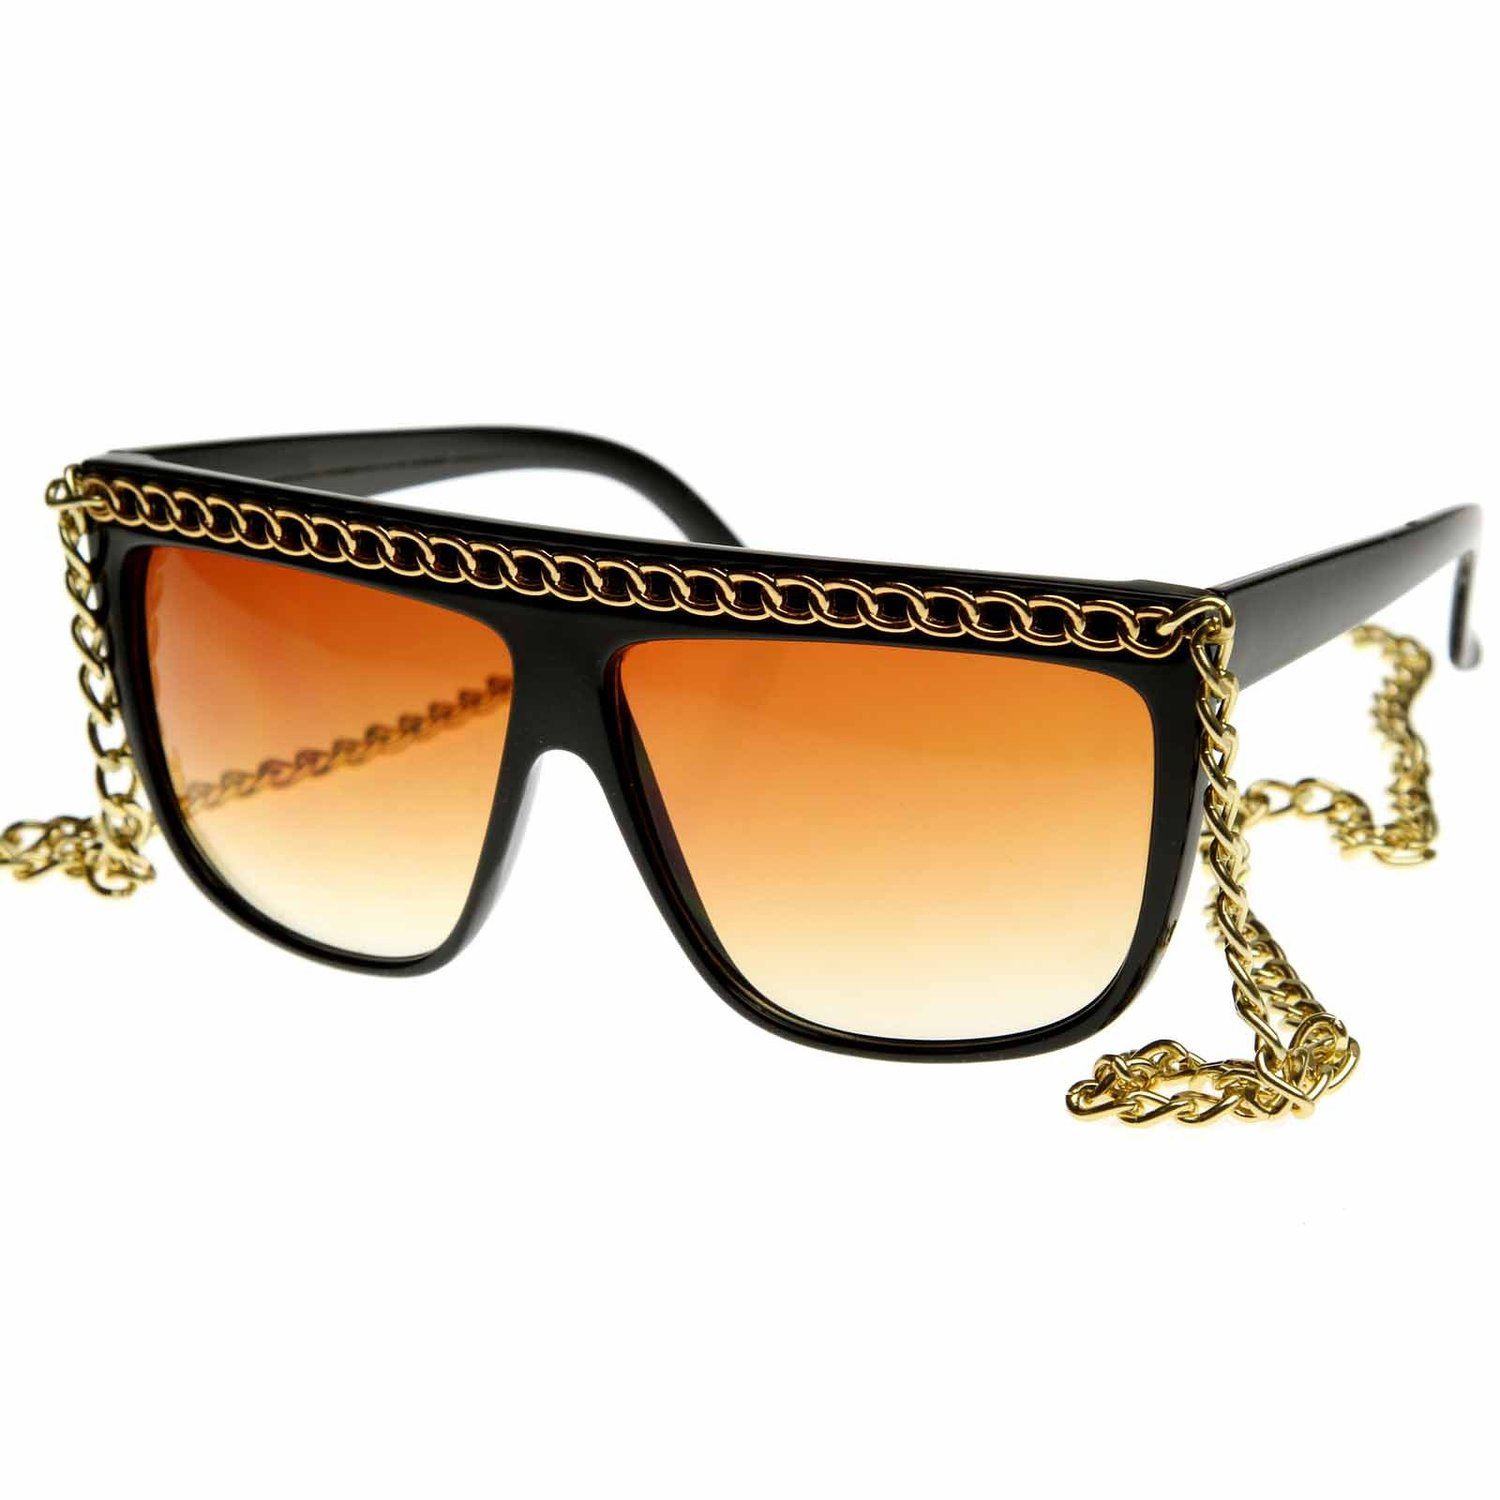 Celebrity Fab Chained Designer Inspired Fashion Glasses 12 Inch Chain - Brown